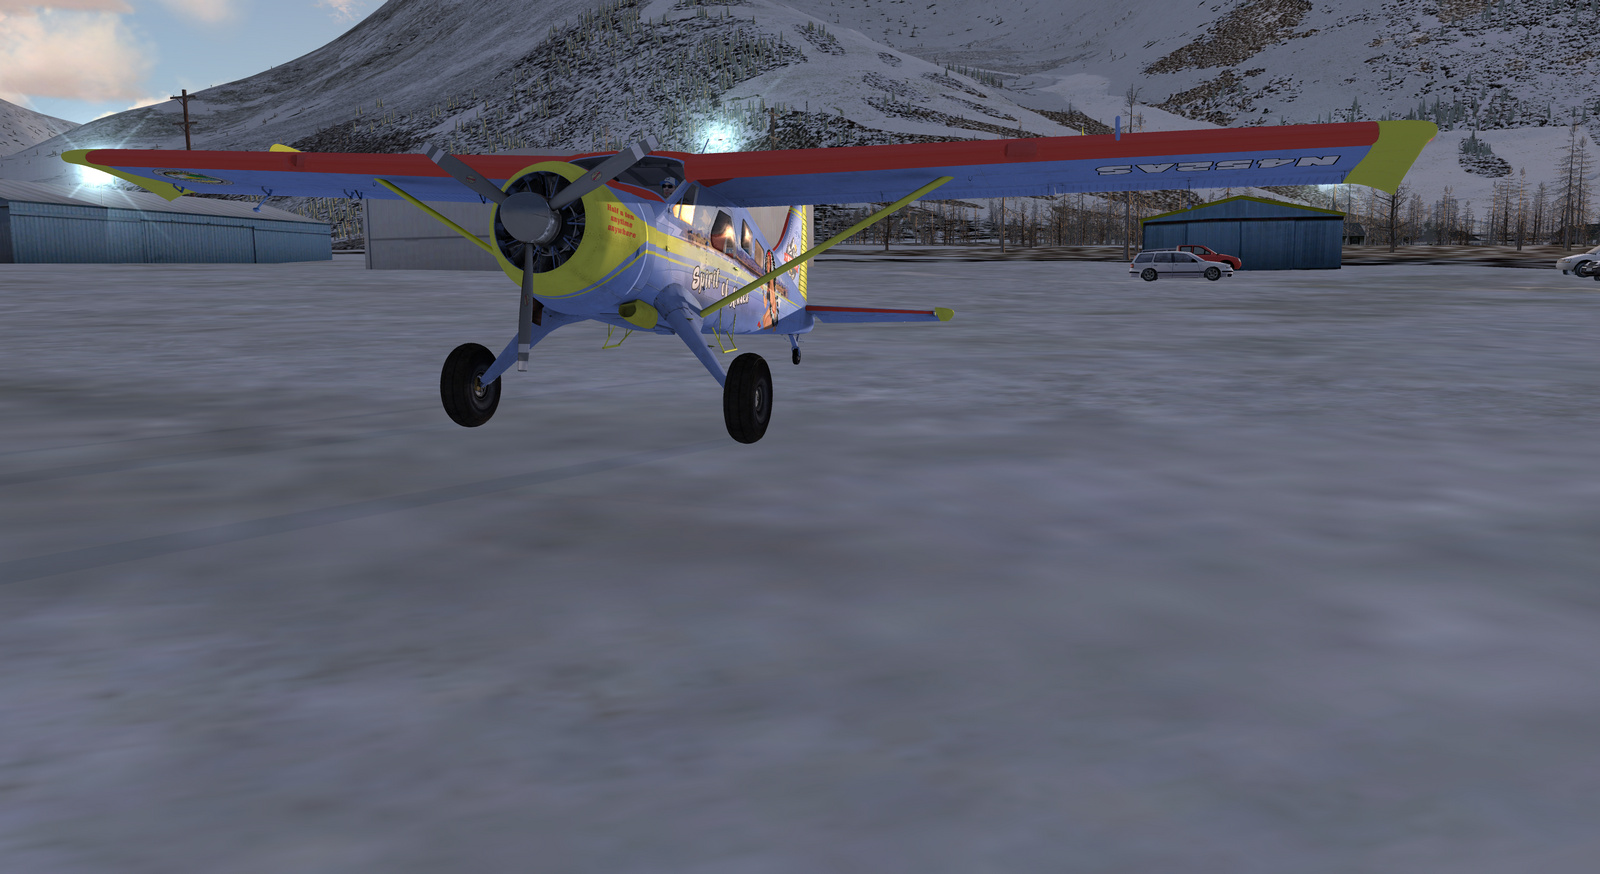 DHC-2 Beaver, Spirit of Alaska, Tundra STOL version, Screenshot 2/19